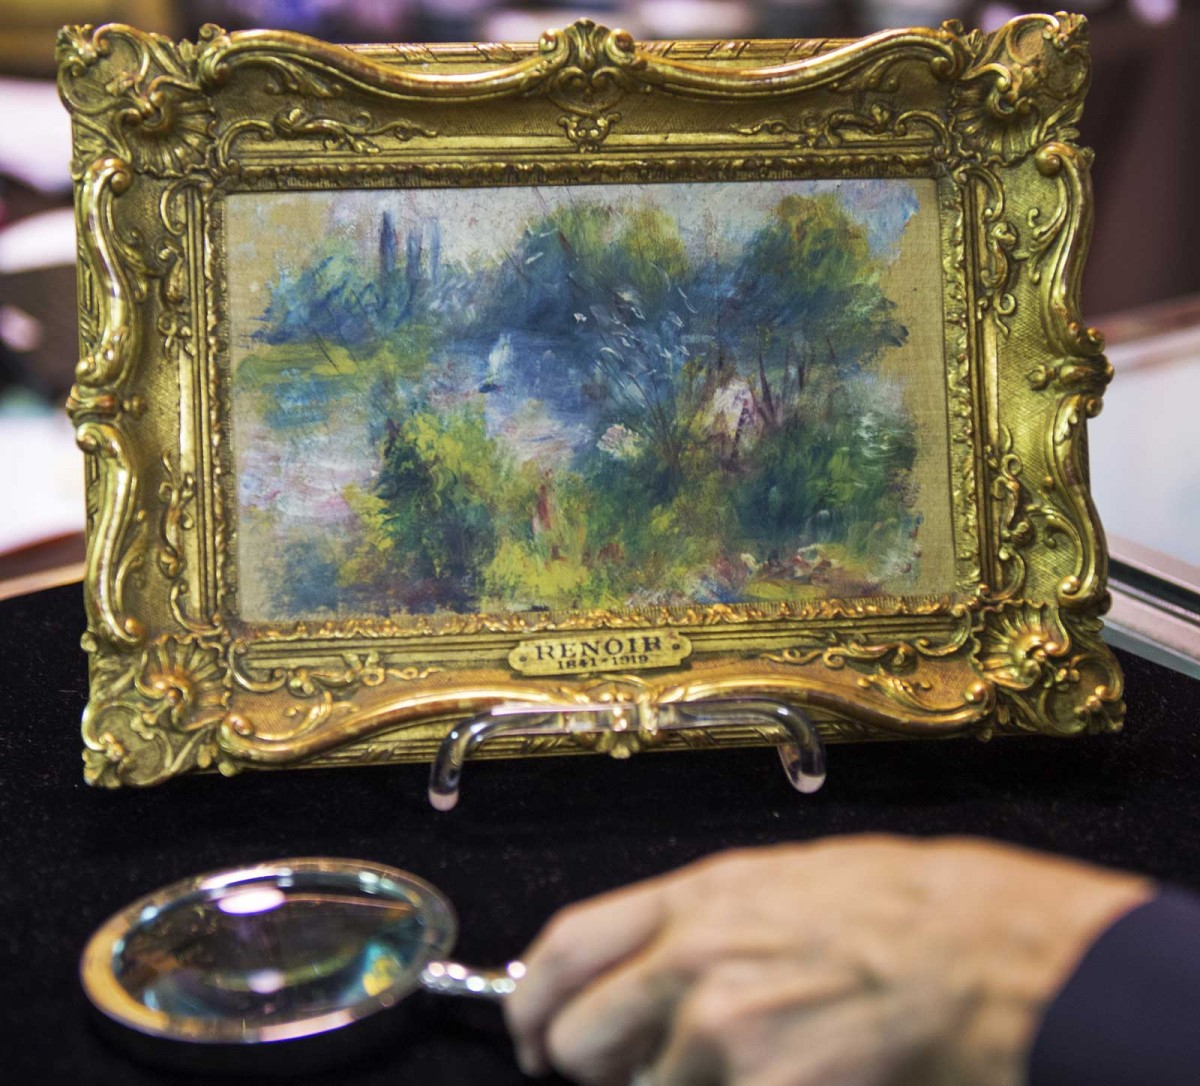 The painting was stolen from the Renoir gallery on Nov. 17, 1951.